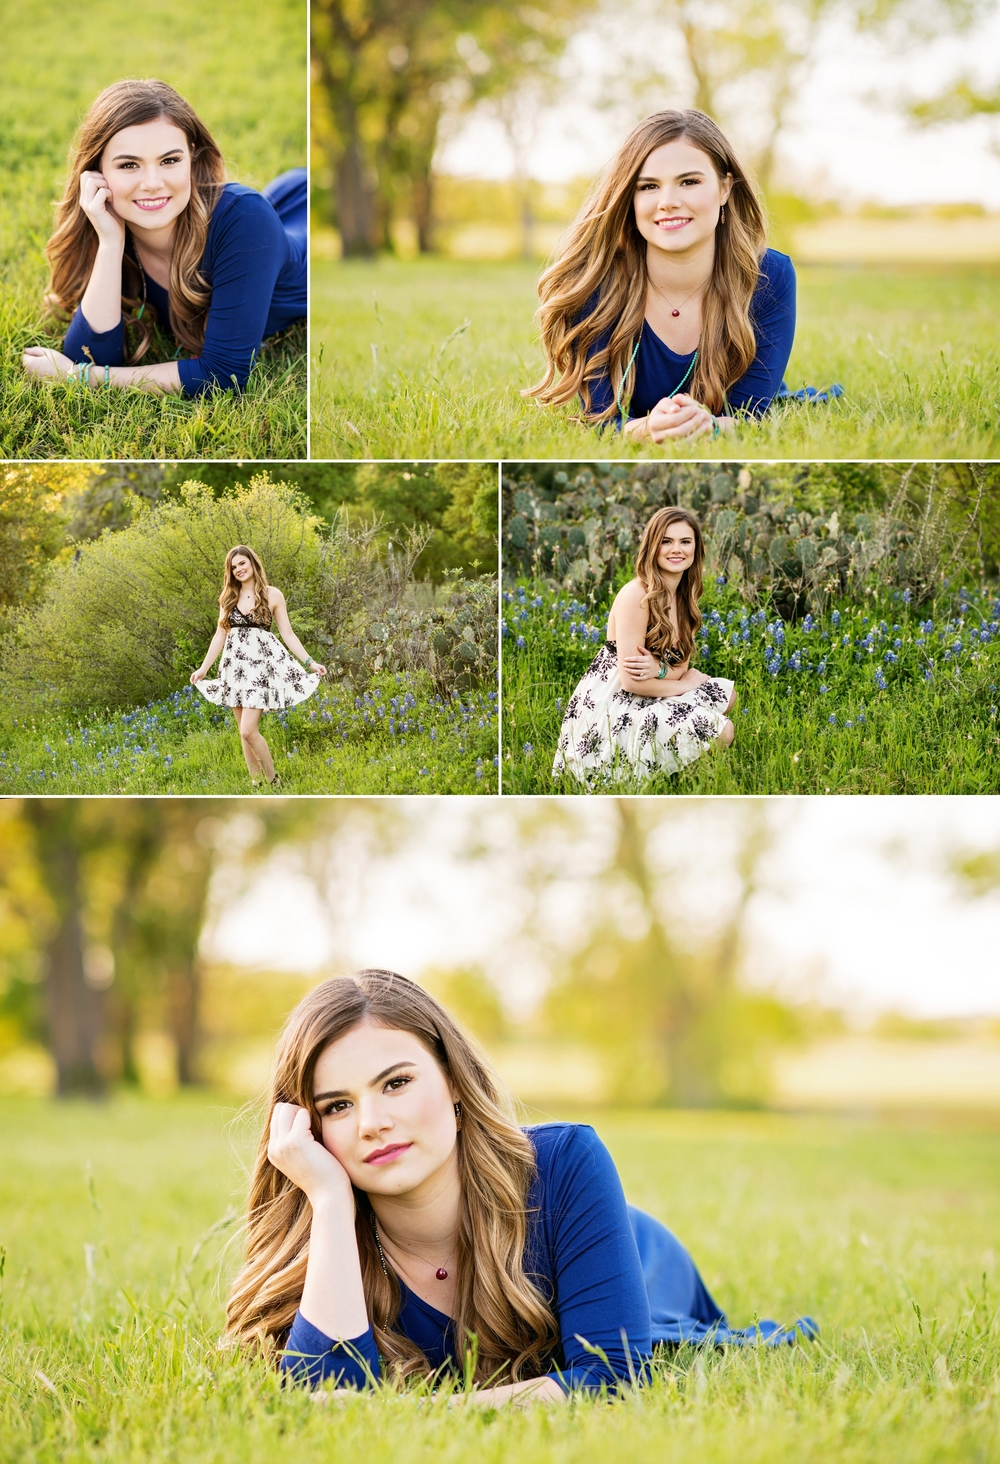 Austin High, Senior Picture ideas, Heidi Knight Photography, Bluebonnets, cactus, natural setting, outdoors, natural light, Kyle, Texas.jpg